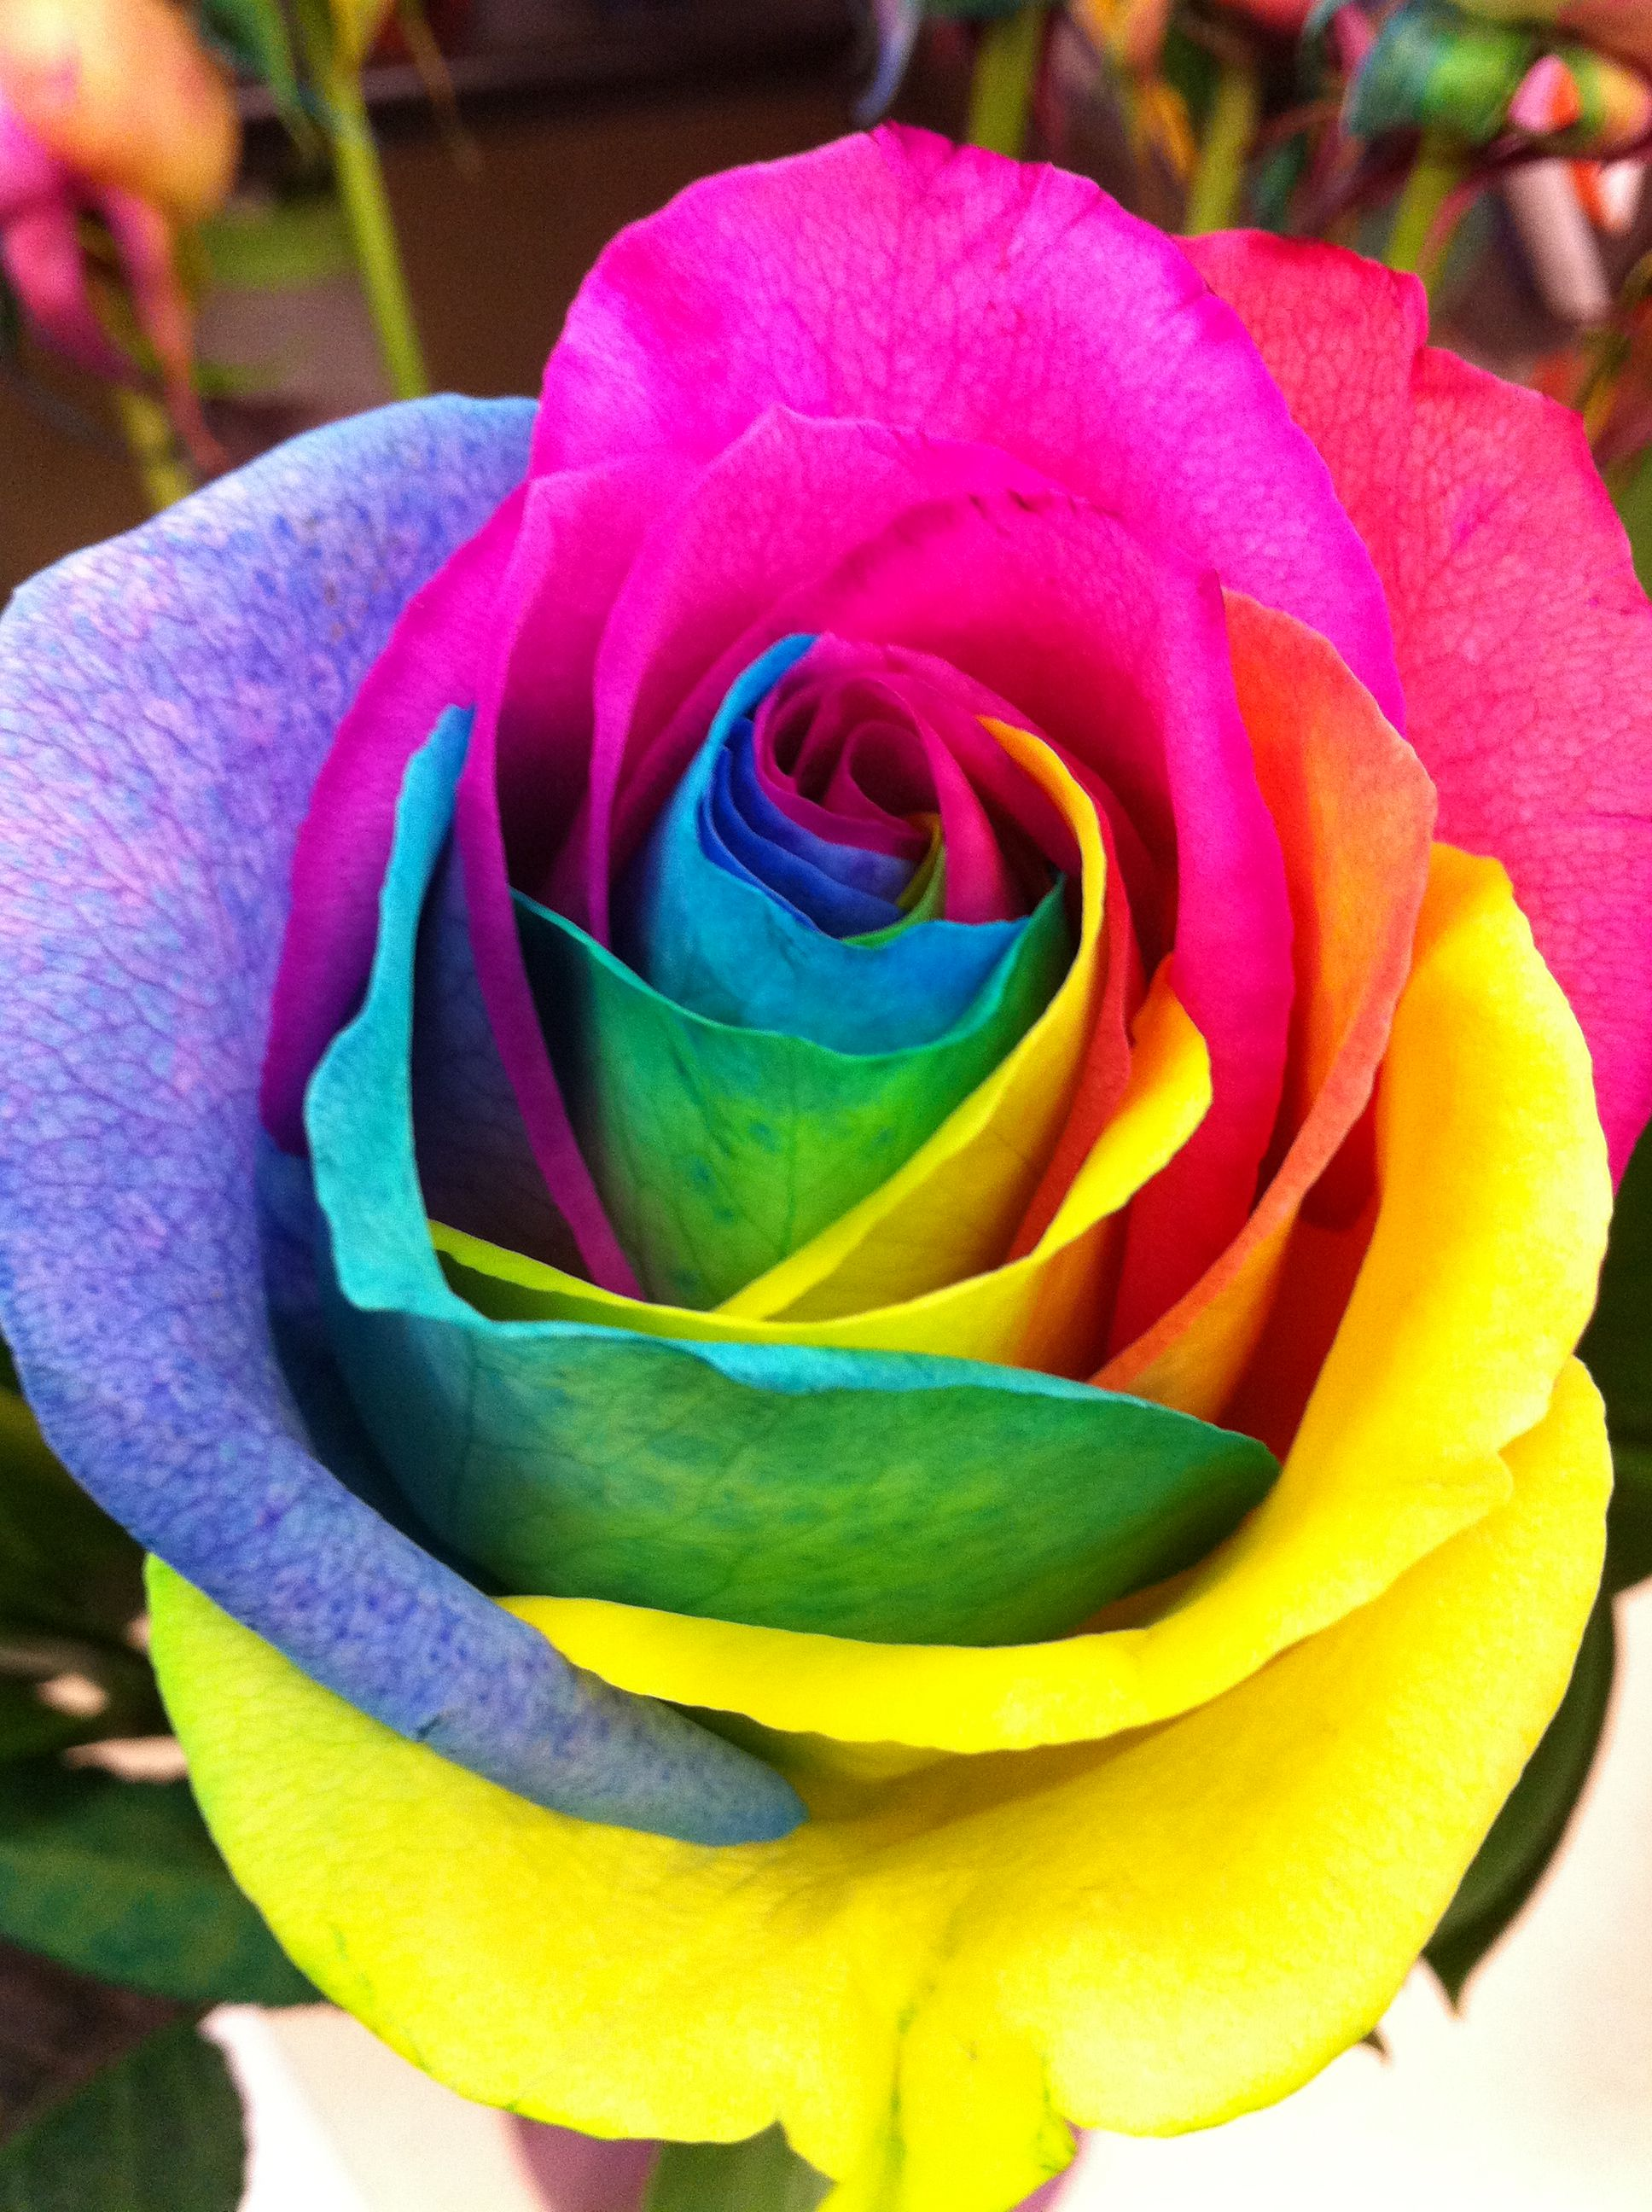 Tie dye rose ericka 39 s fave things pinterest flowers for How to make tie dye roses